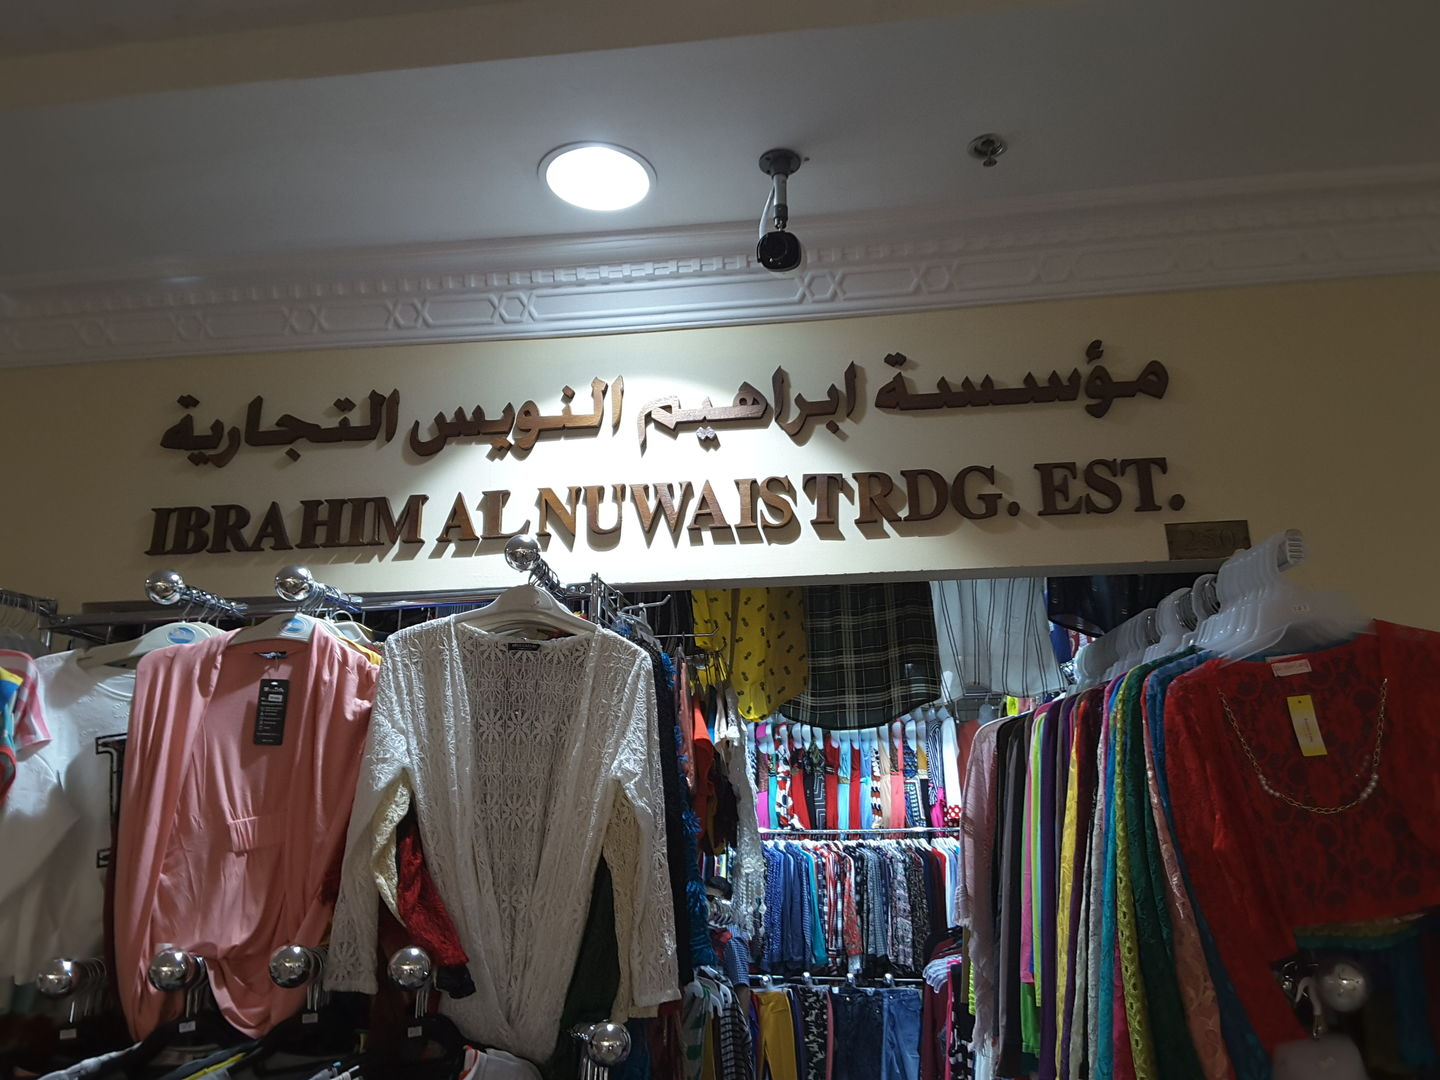 HiDubai-business-ibrahim-al-nuwais-shopping-apparel-naif-dubai-2